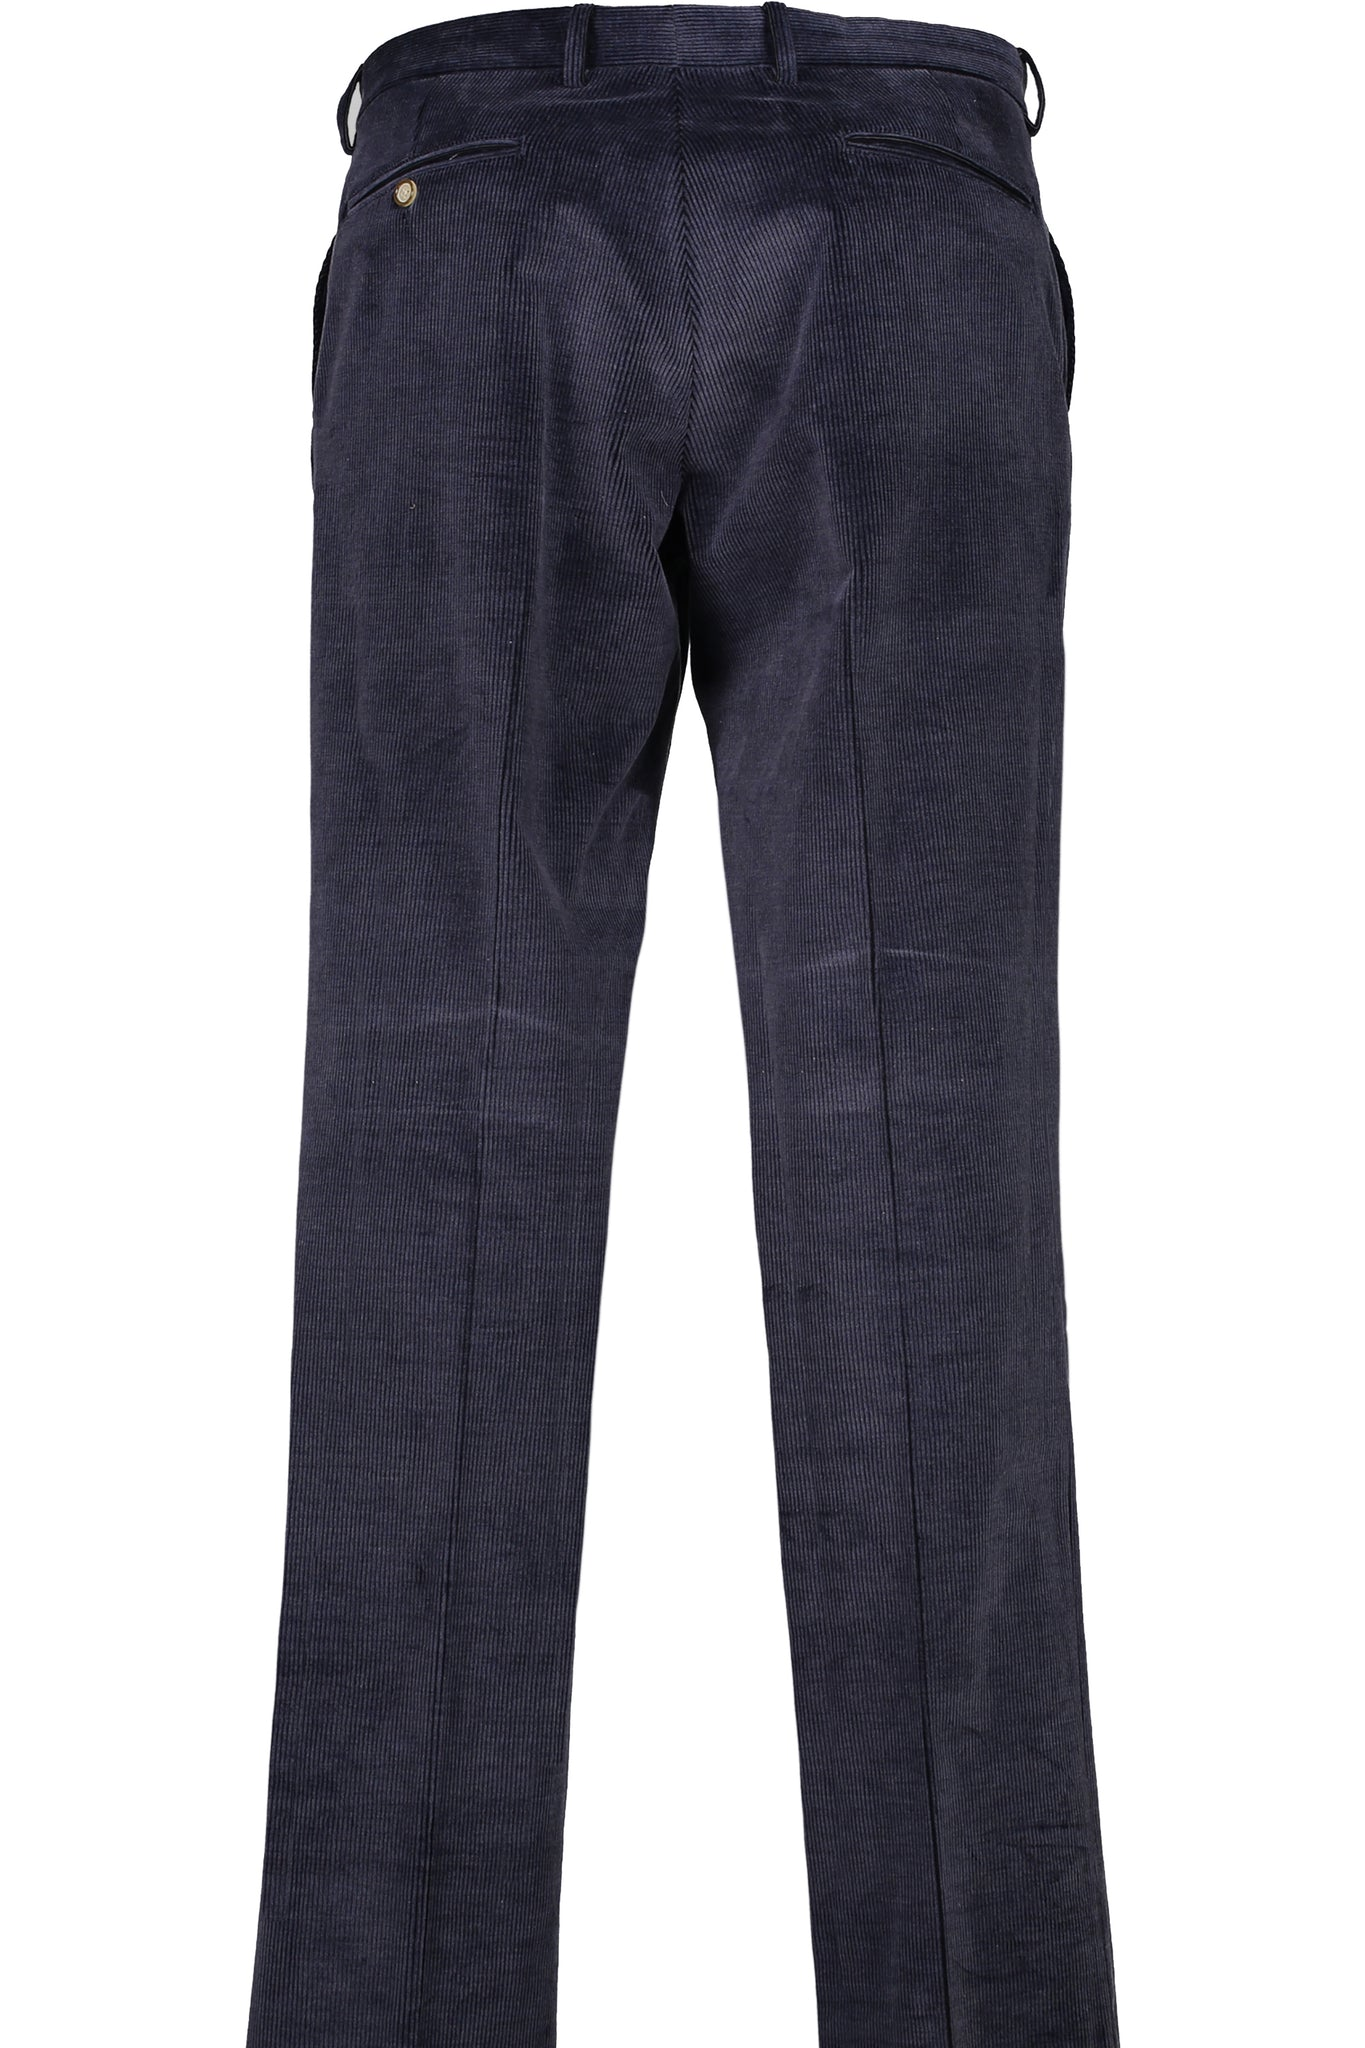 Modern Fit Navy Medium Wale Corduroy Flat Front Dress Pant -  Hardwick.com